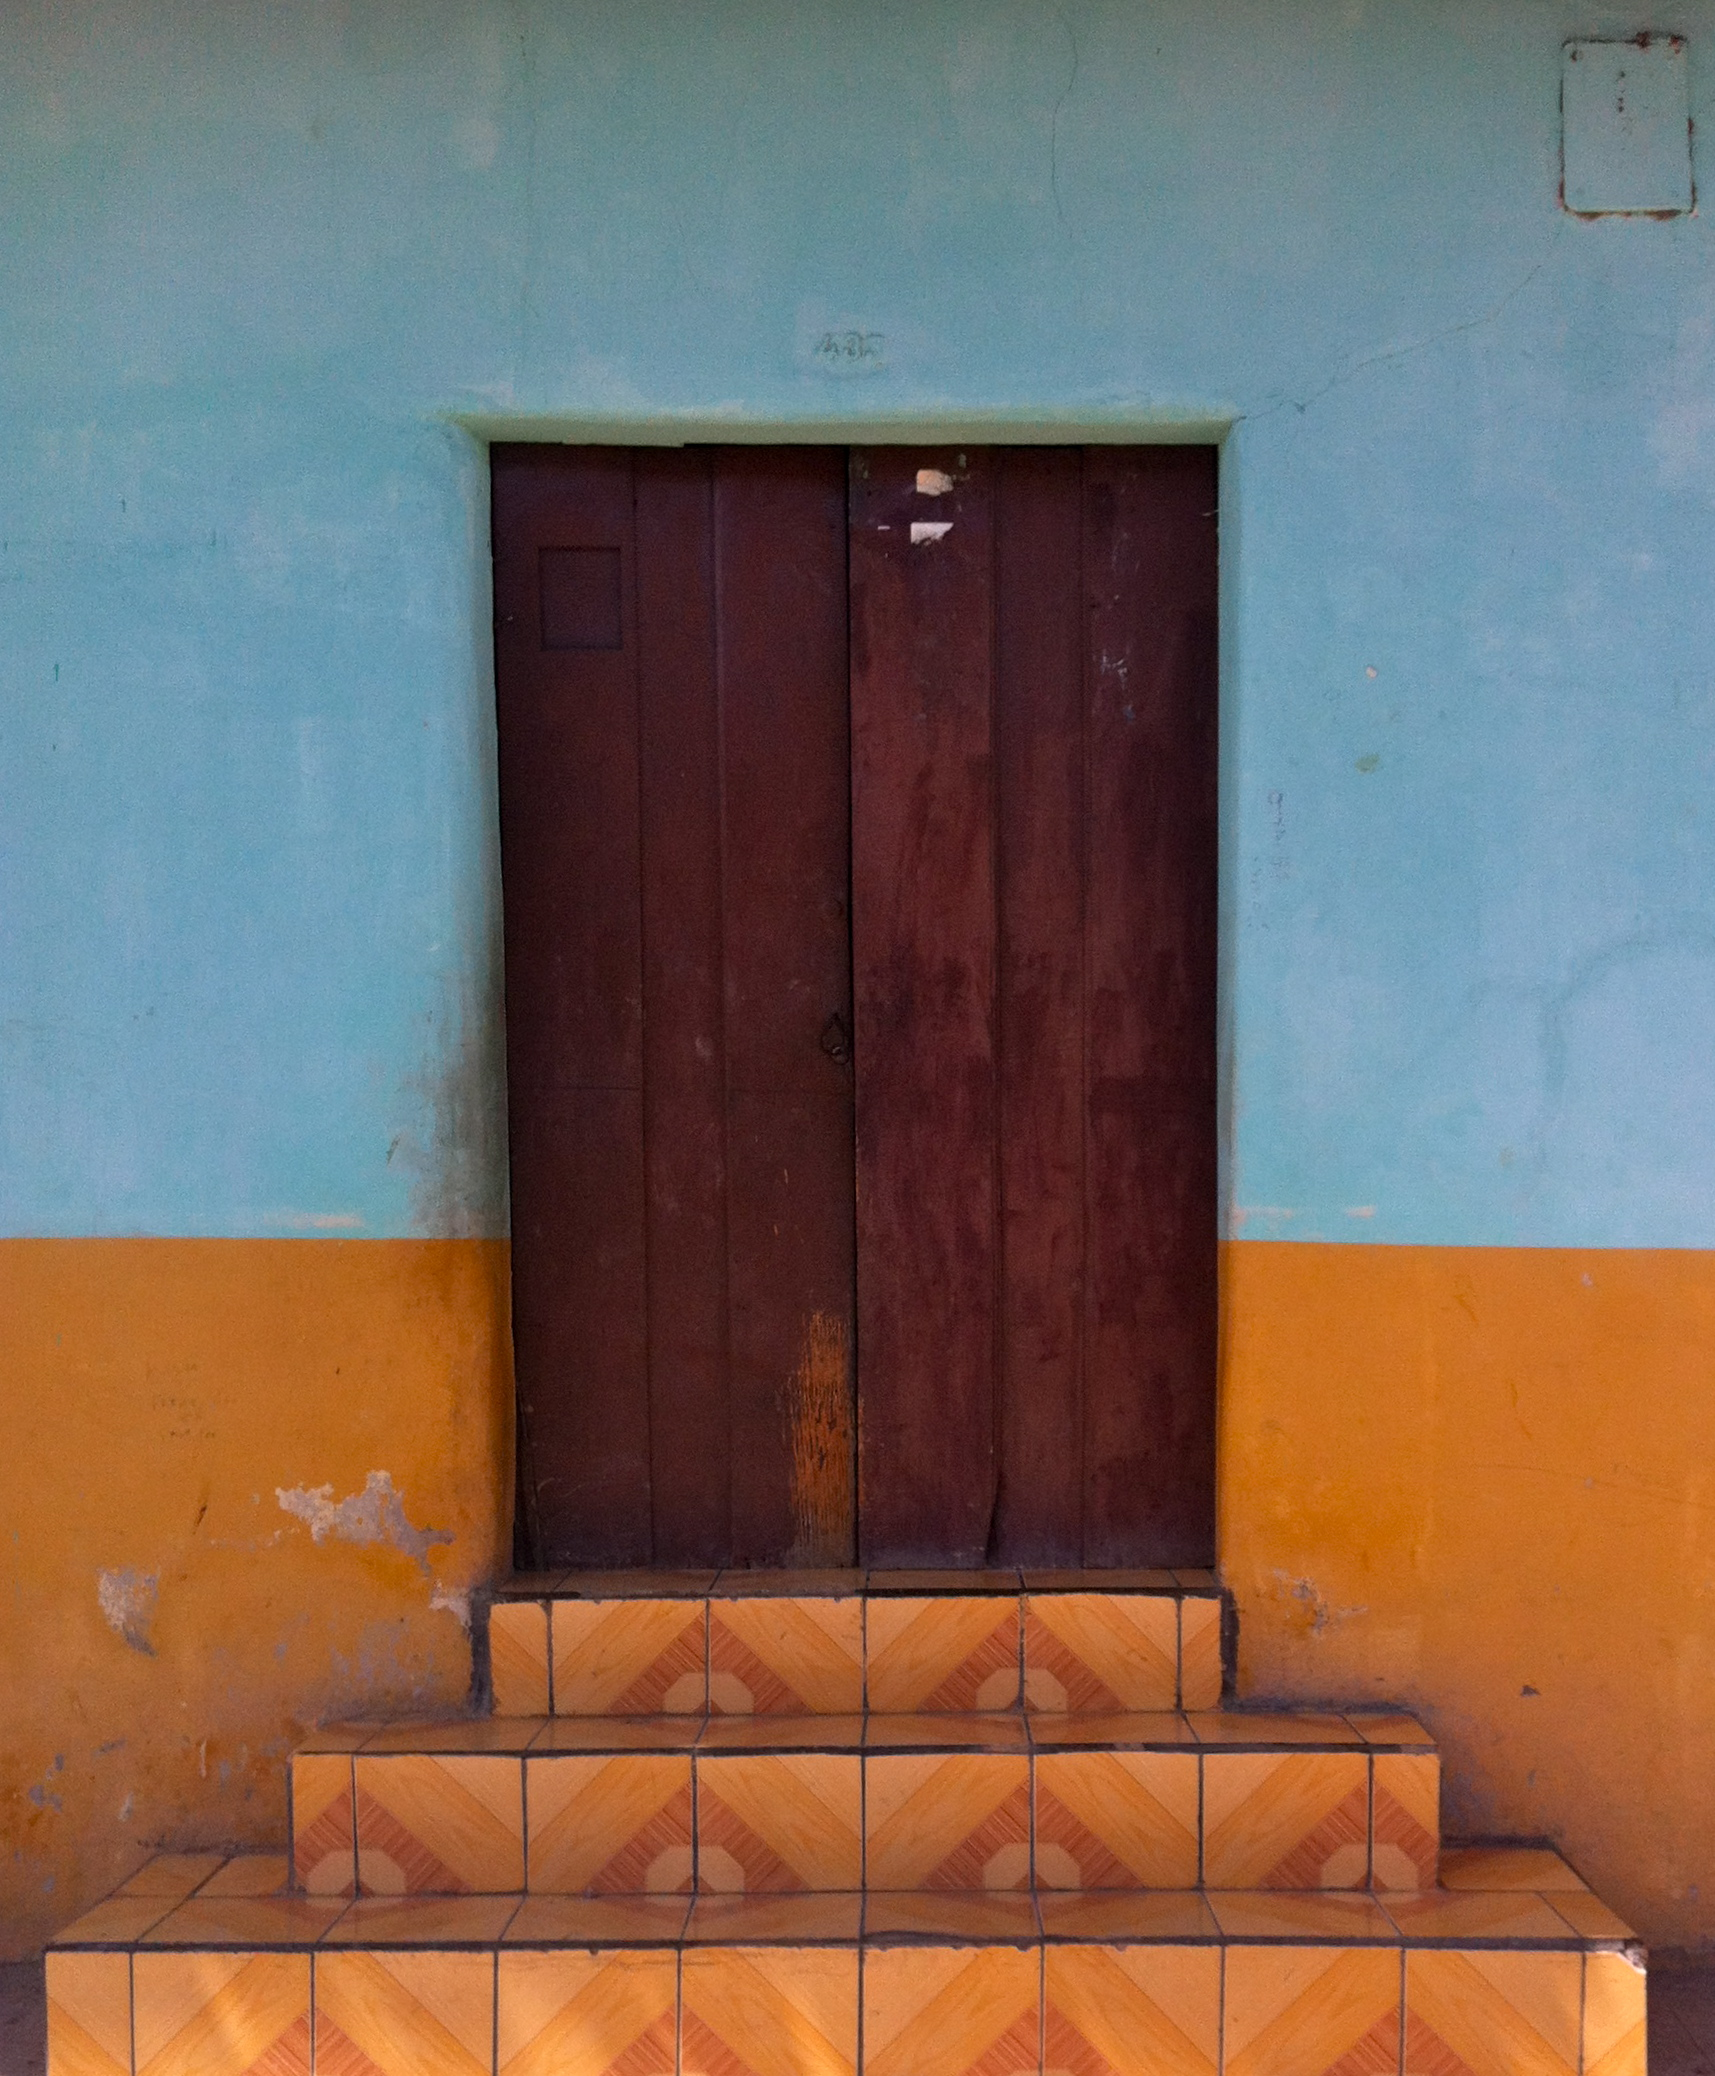 Doorway | Photo by Wilson Carletti (All Rights Reserved)